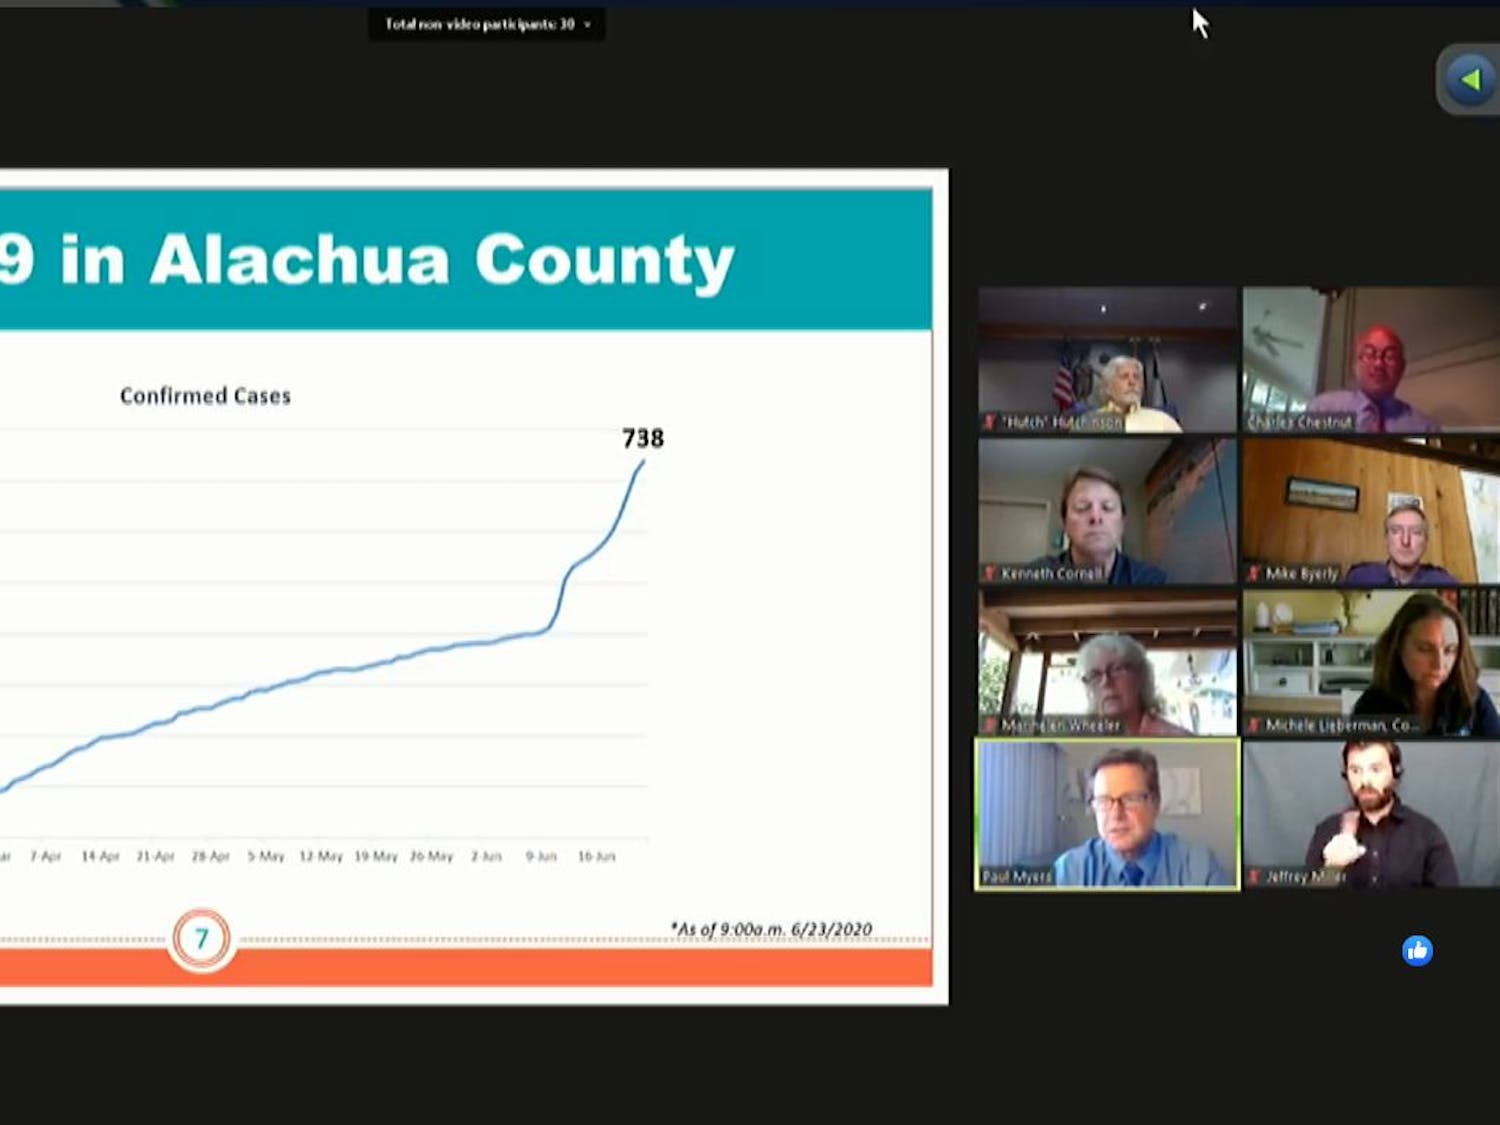 Paul Myers, an administrator for the county health department, highlights the increase in COVID-19 cases the past two weeks.